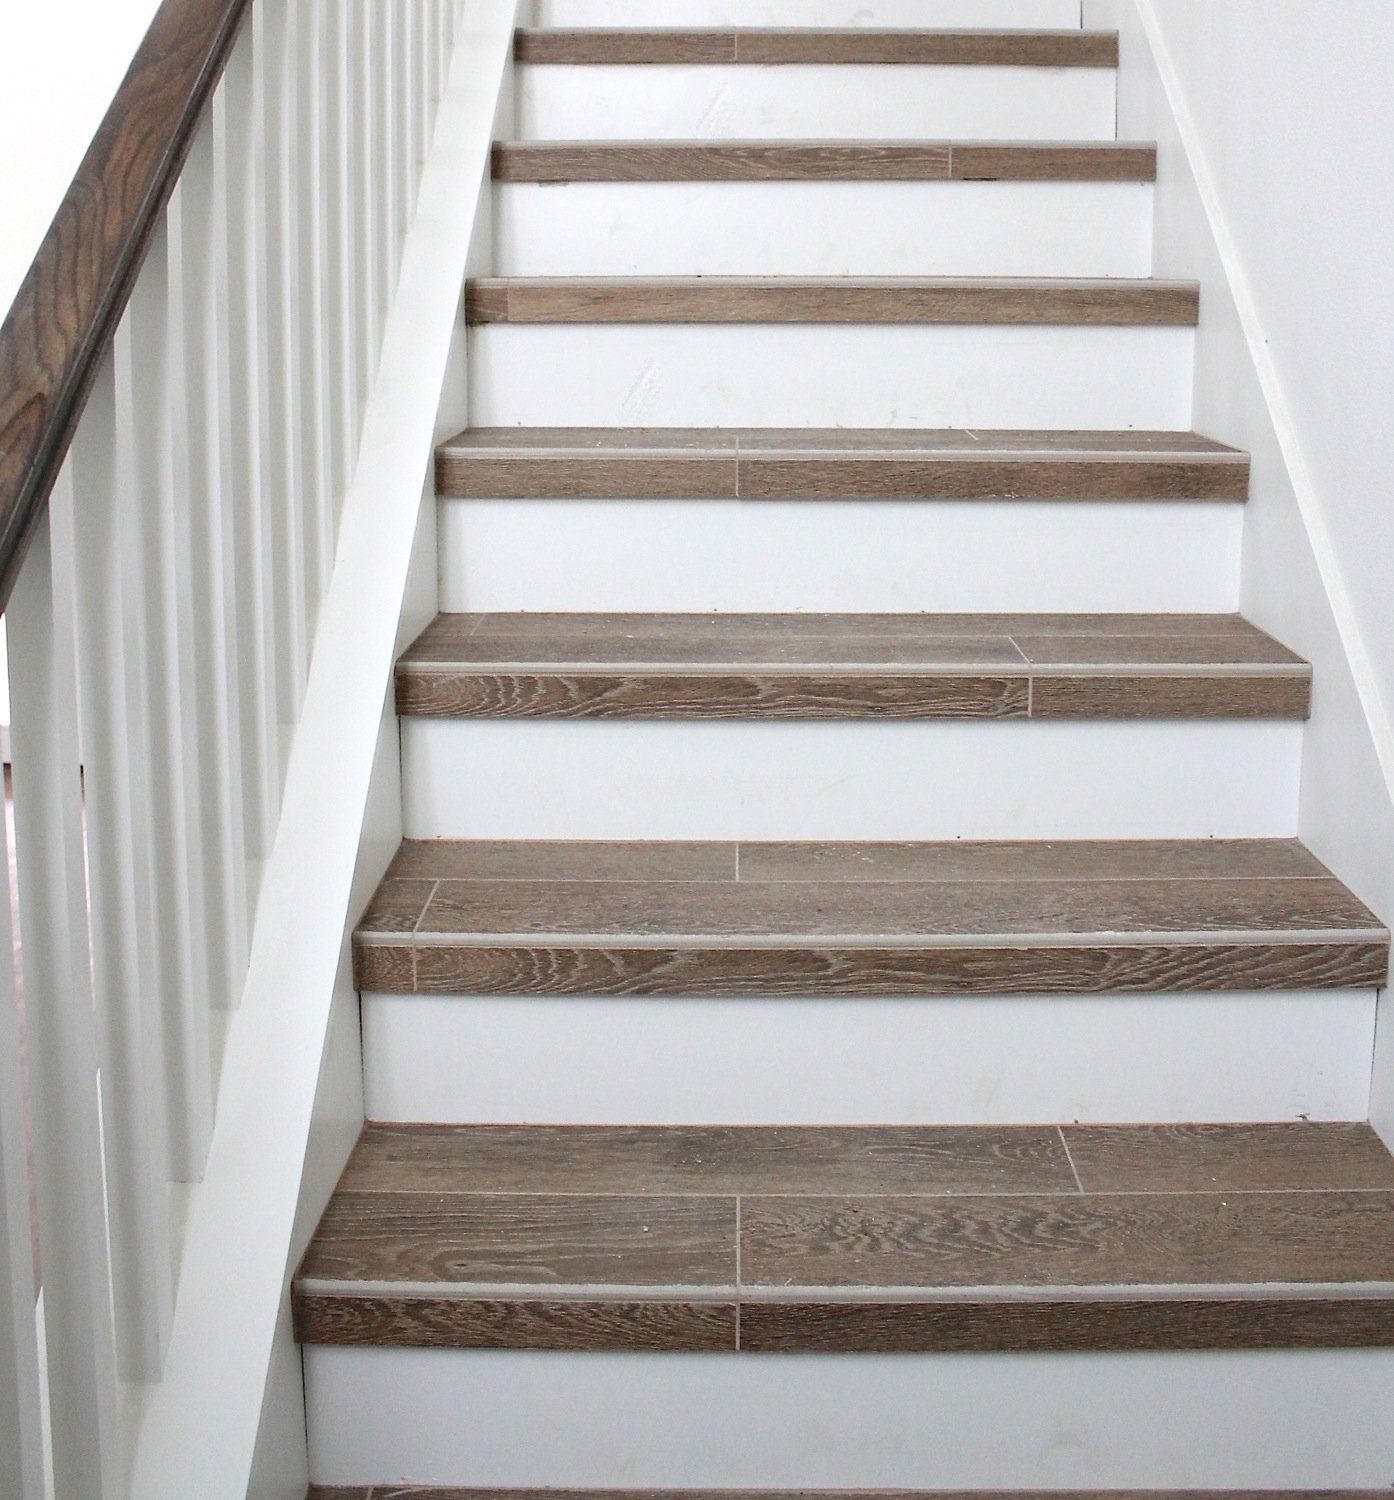 Impressive Stairs Pictures 2 Wood Stair Design Ideas: Kinggeorgehomes.com Wp-content Uploads 2015 05 Interior